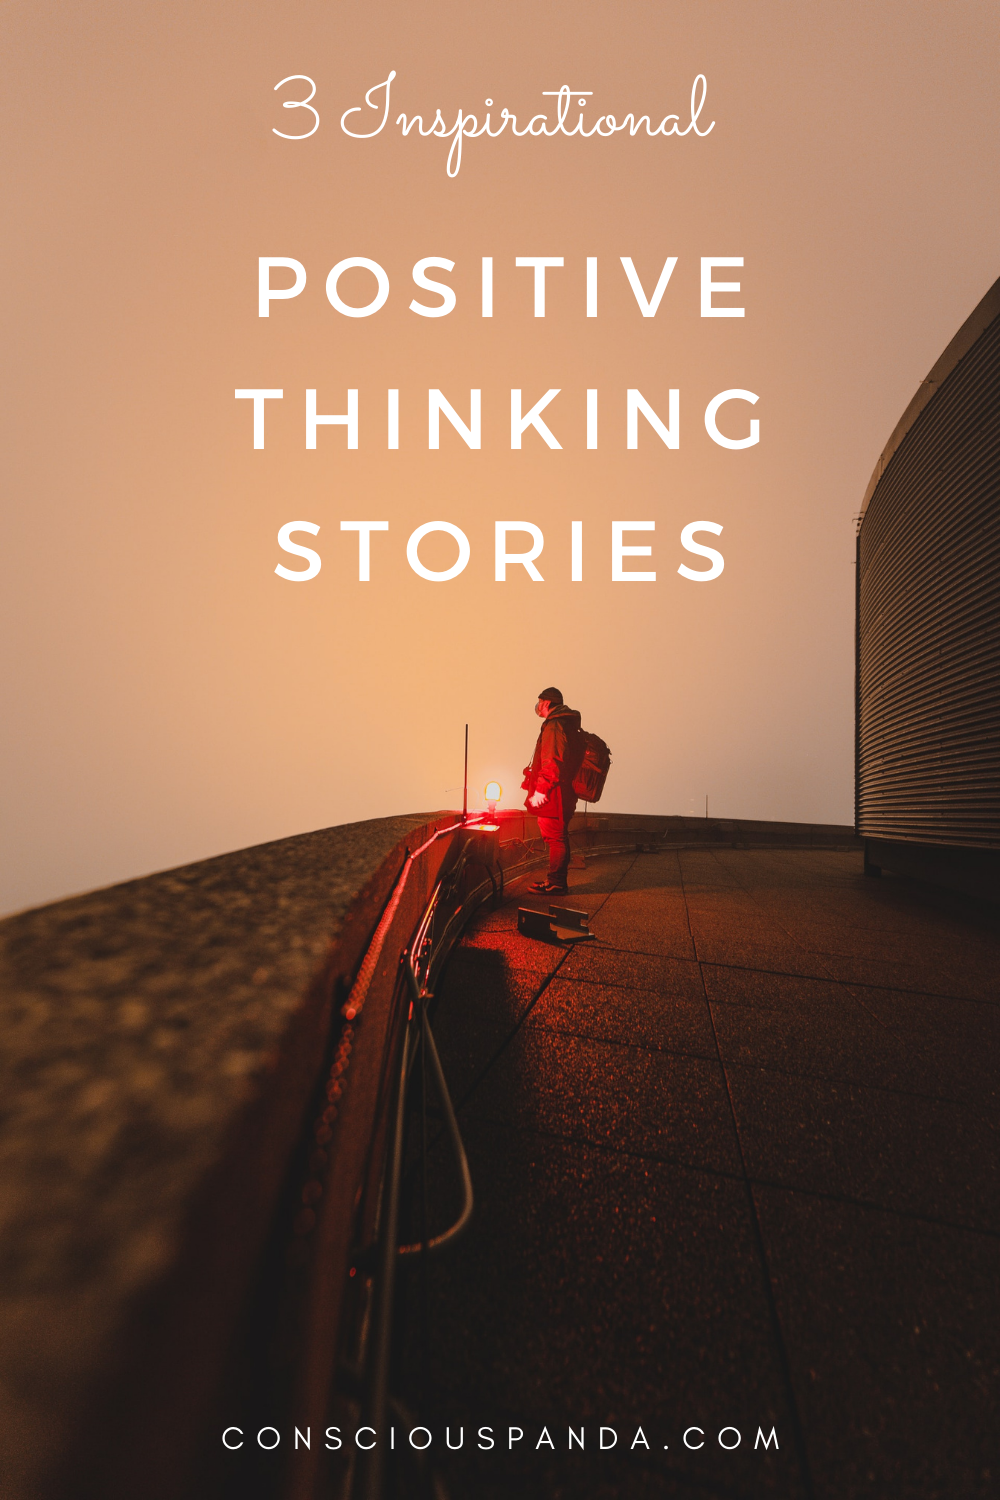 3 Inspiration Positive Thinking Stories